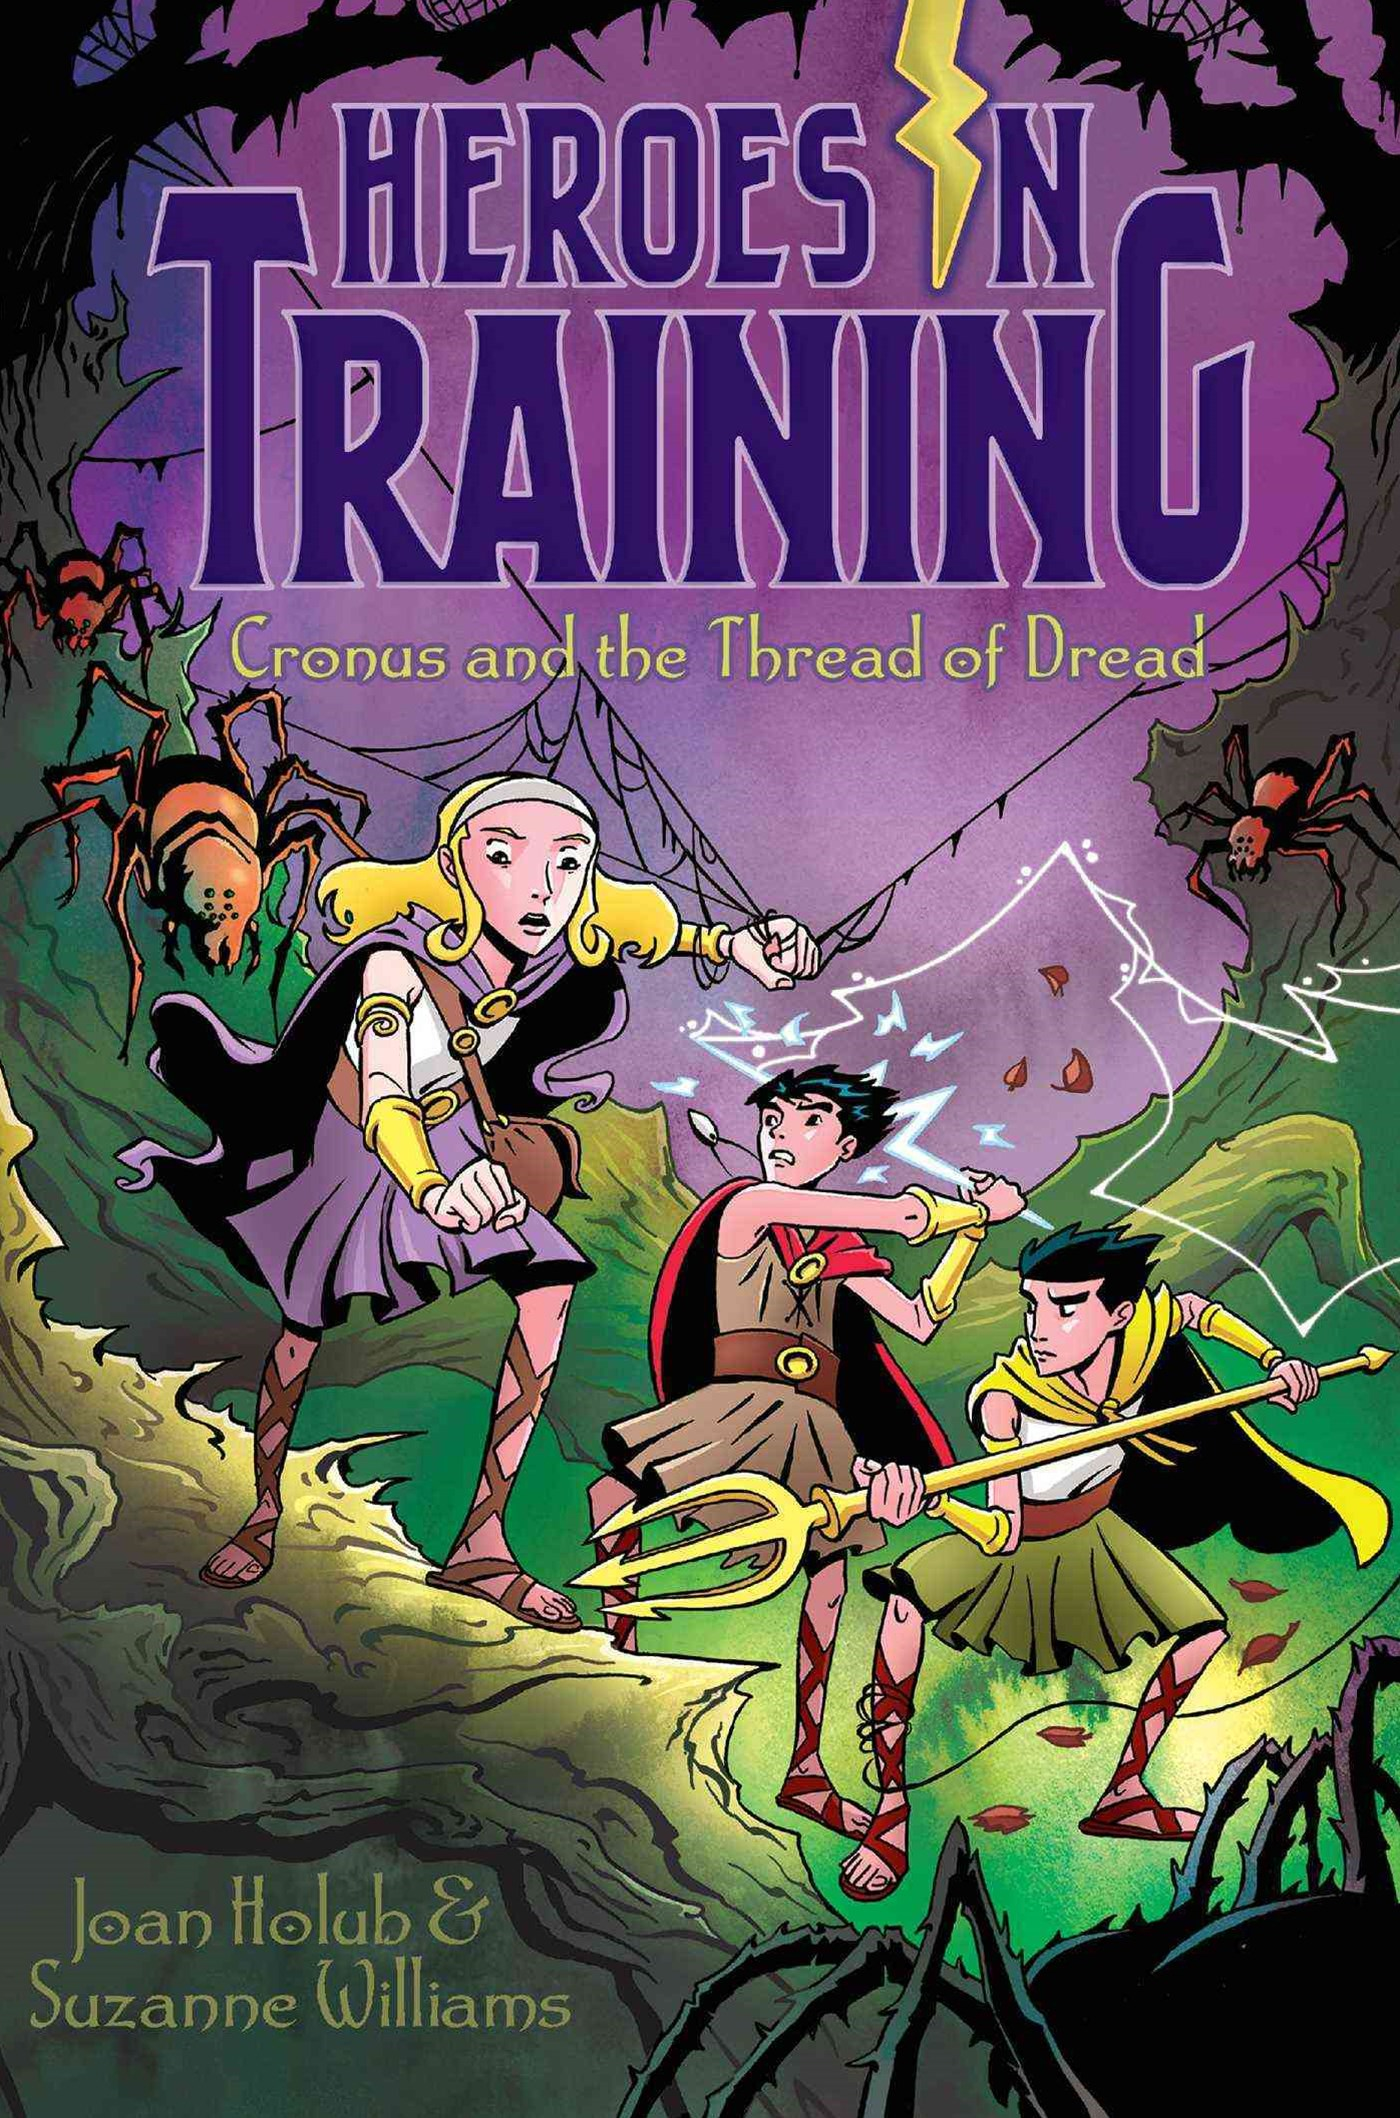 Heroes In Training #8: Cronus and the Thread of Dread